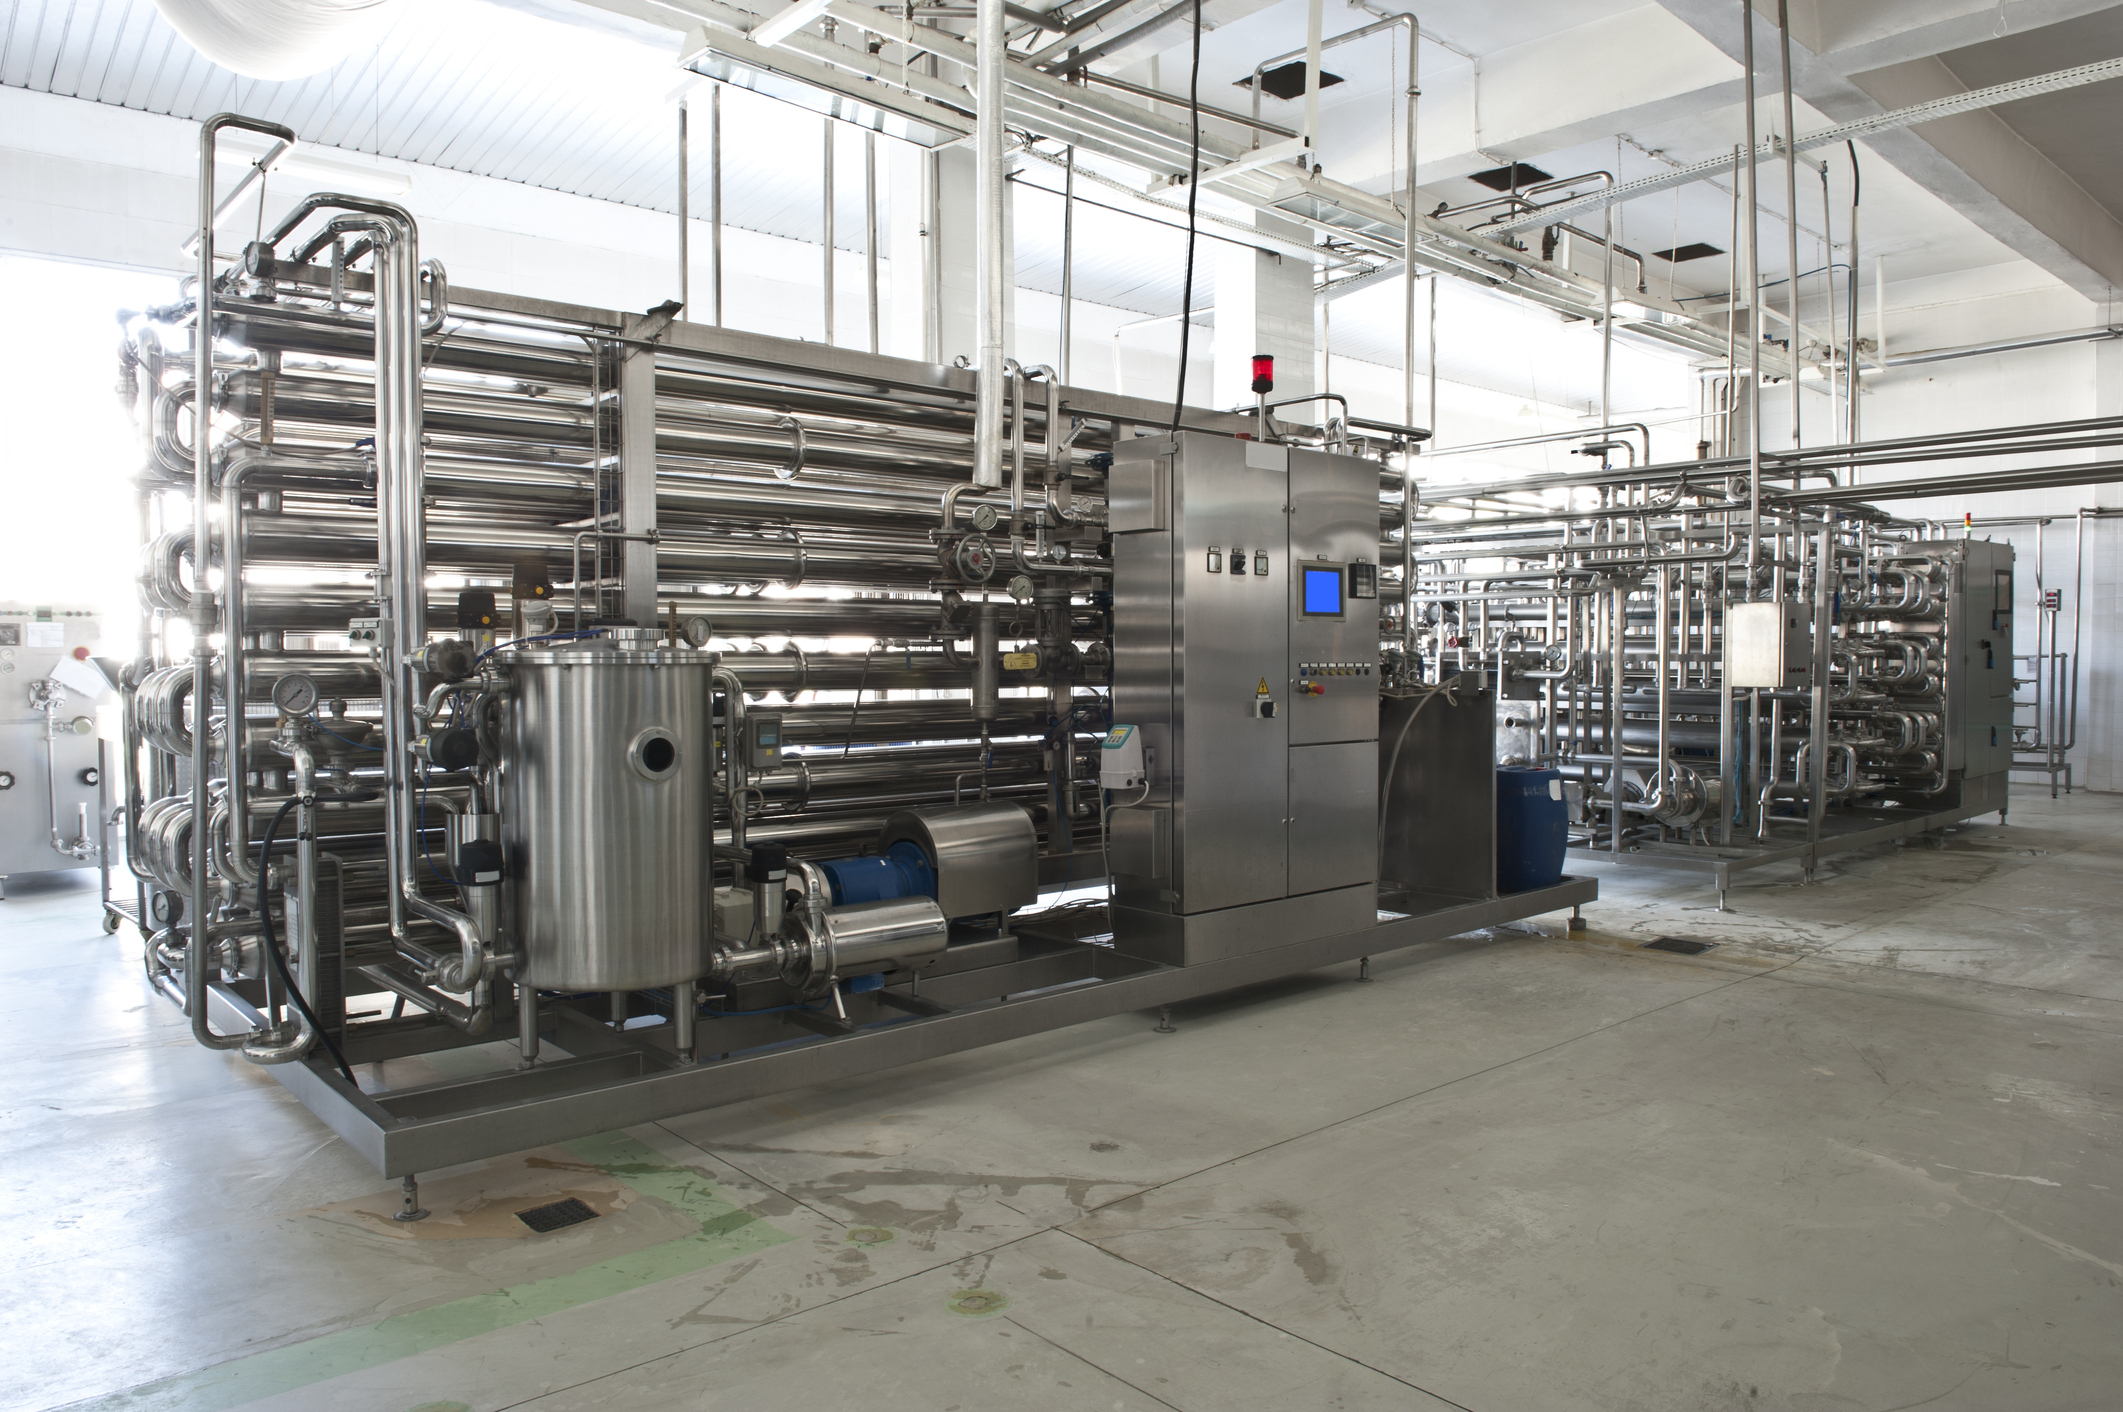 Pasteurizer Certification - We offer annual and bi-annual pasteurizer certification for HTST and VAT systems throughout western Canada including salt testing and dye checks. Contact us today to book your certification.